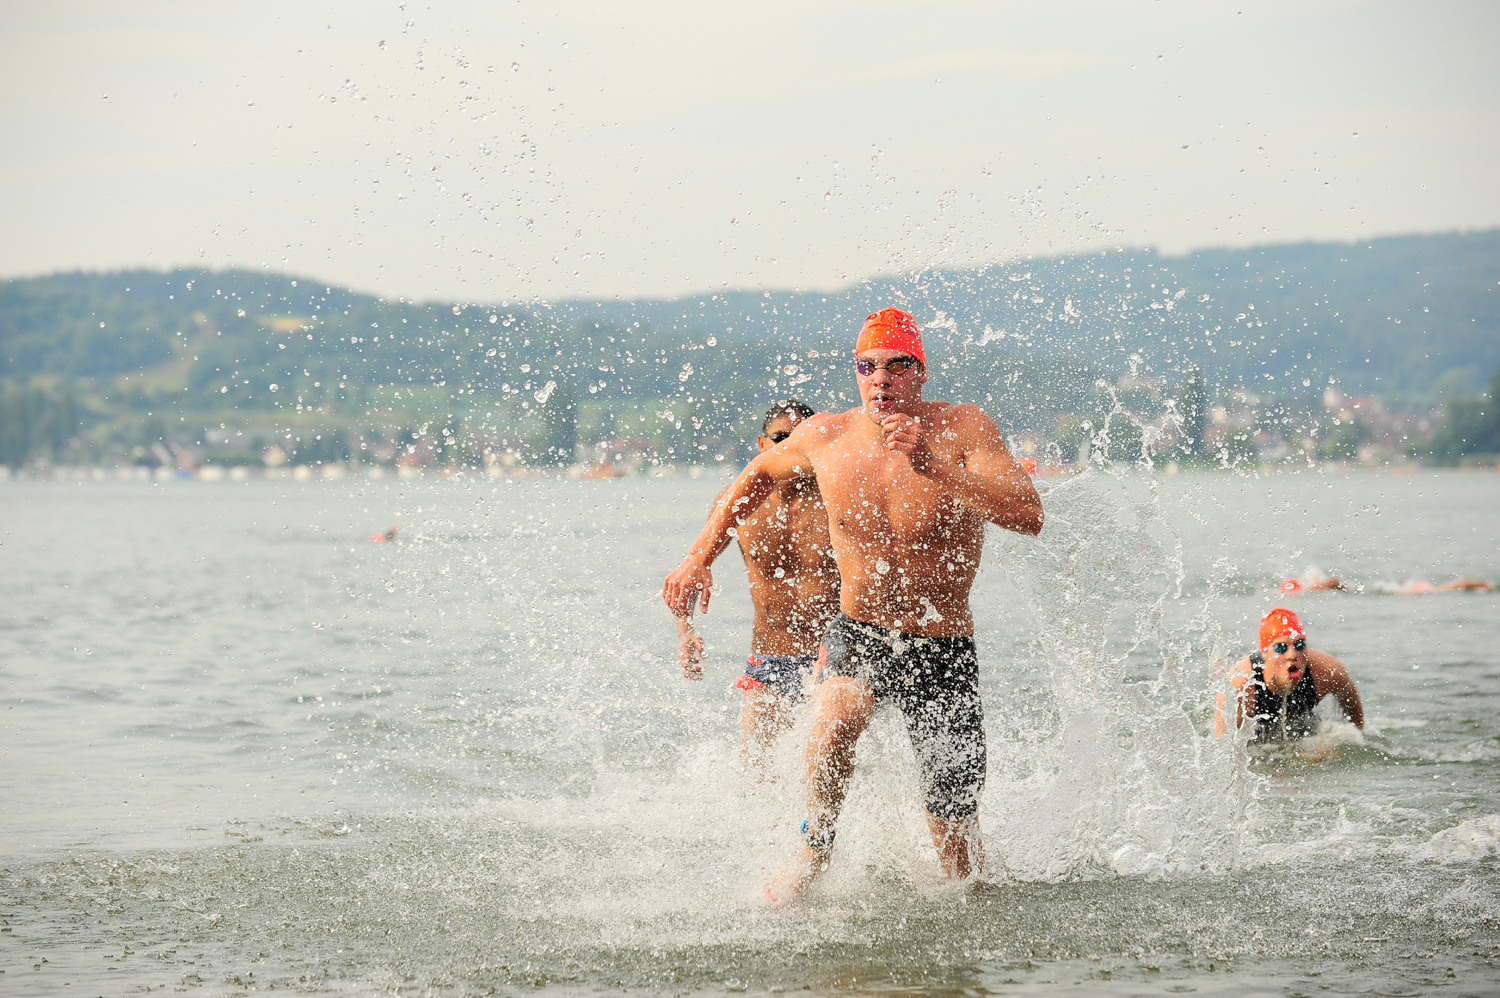 Megathlon-Pressebild-SWIM-mail